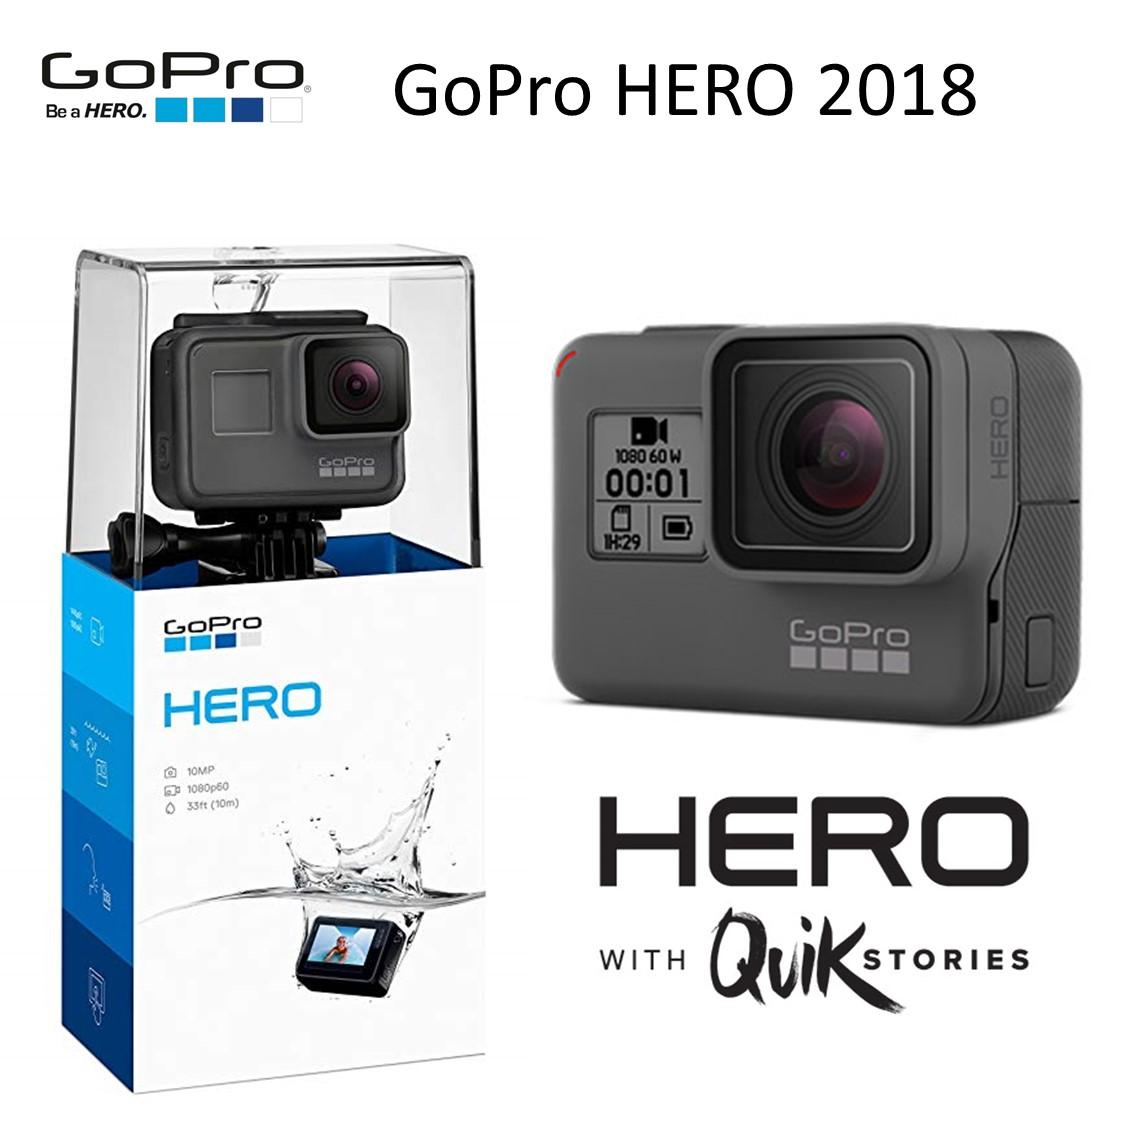 GoPro HERO 2018 with Quik Stories